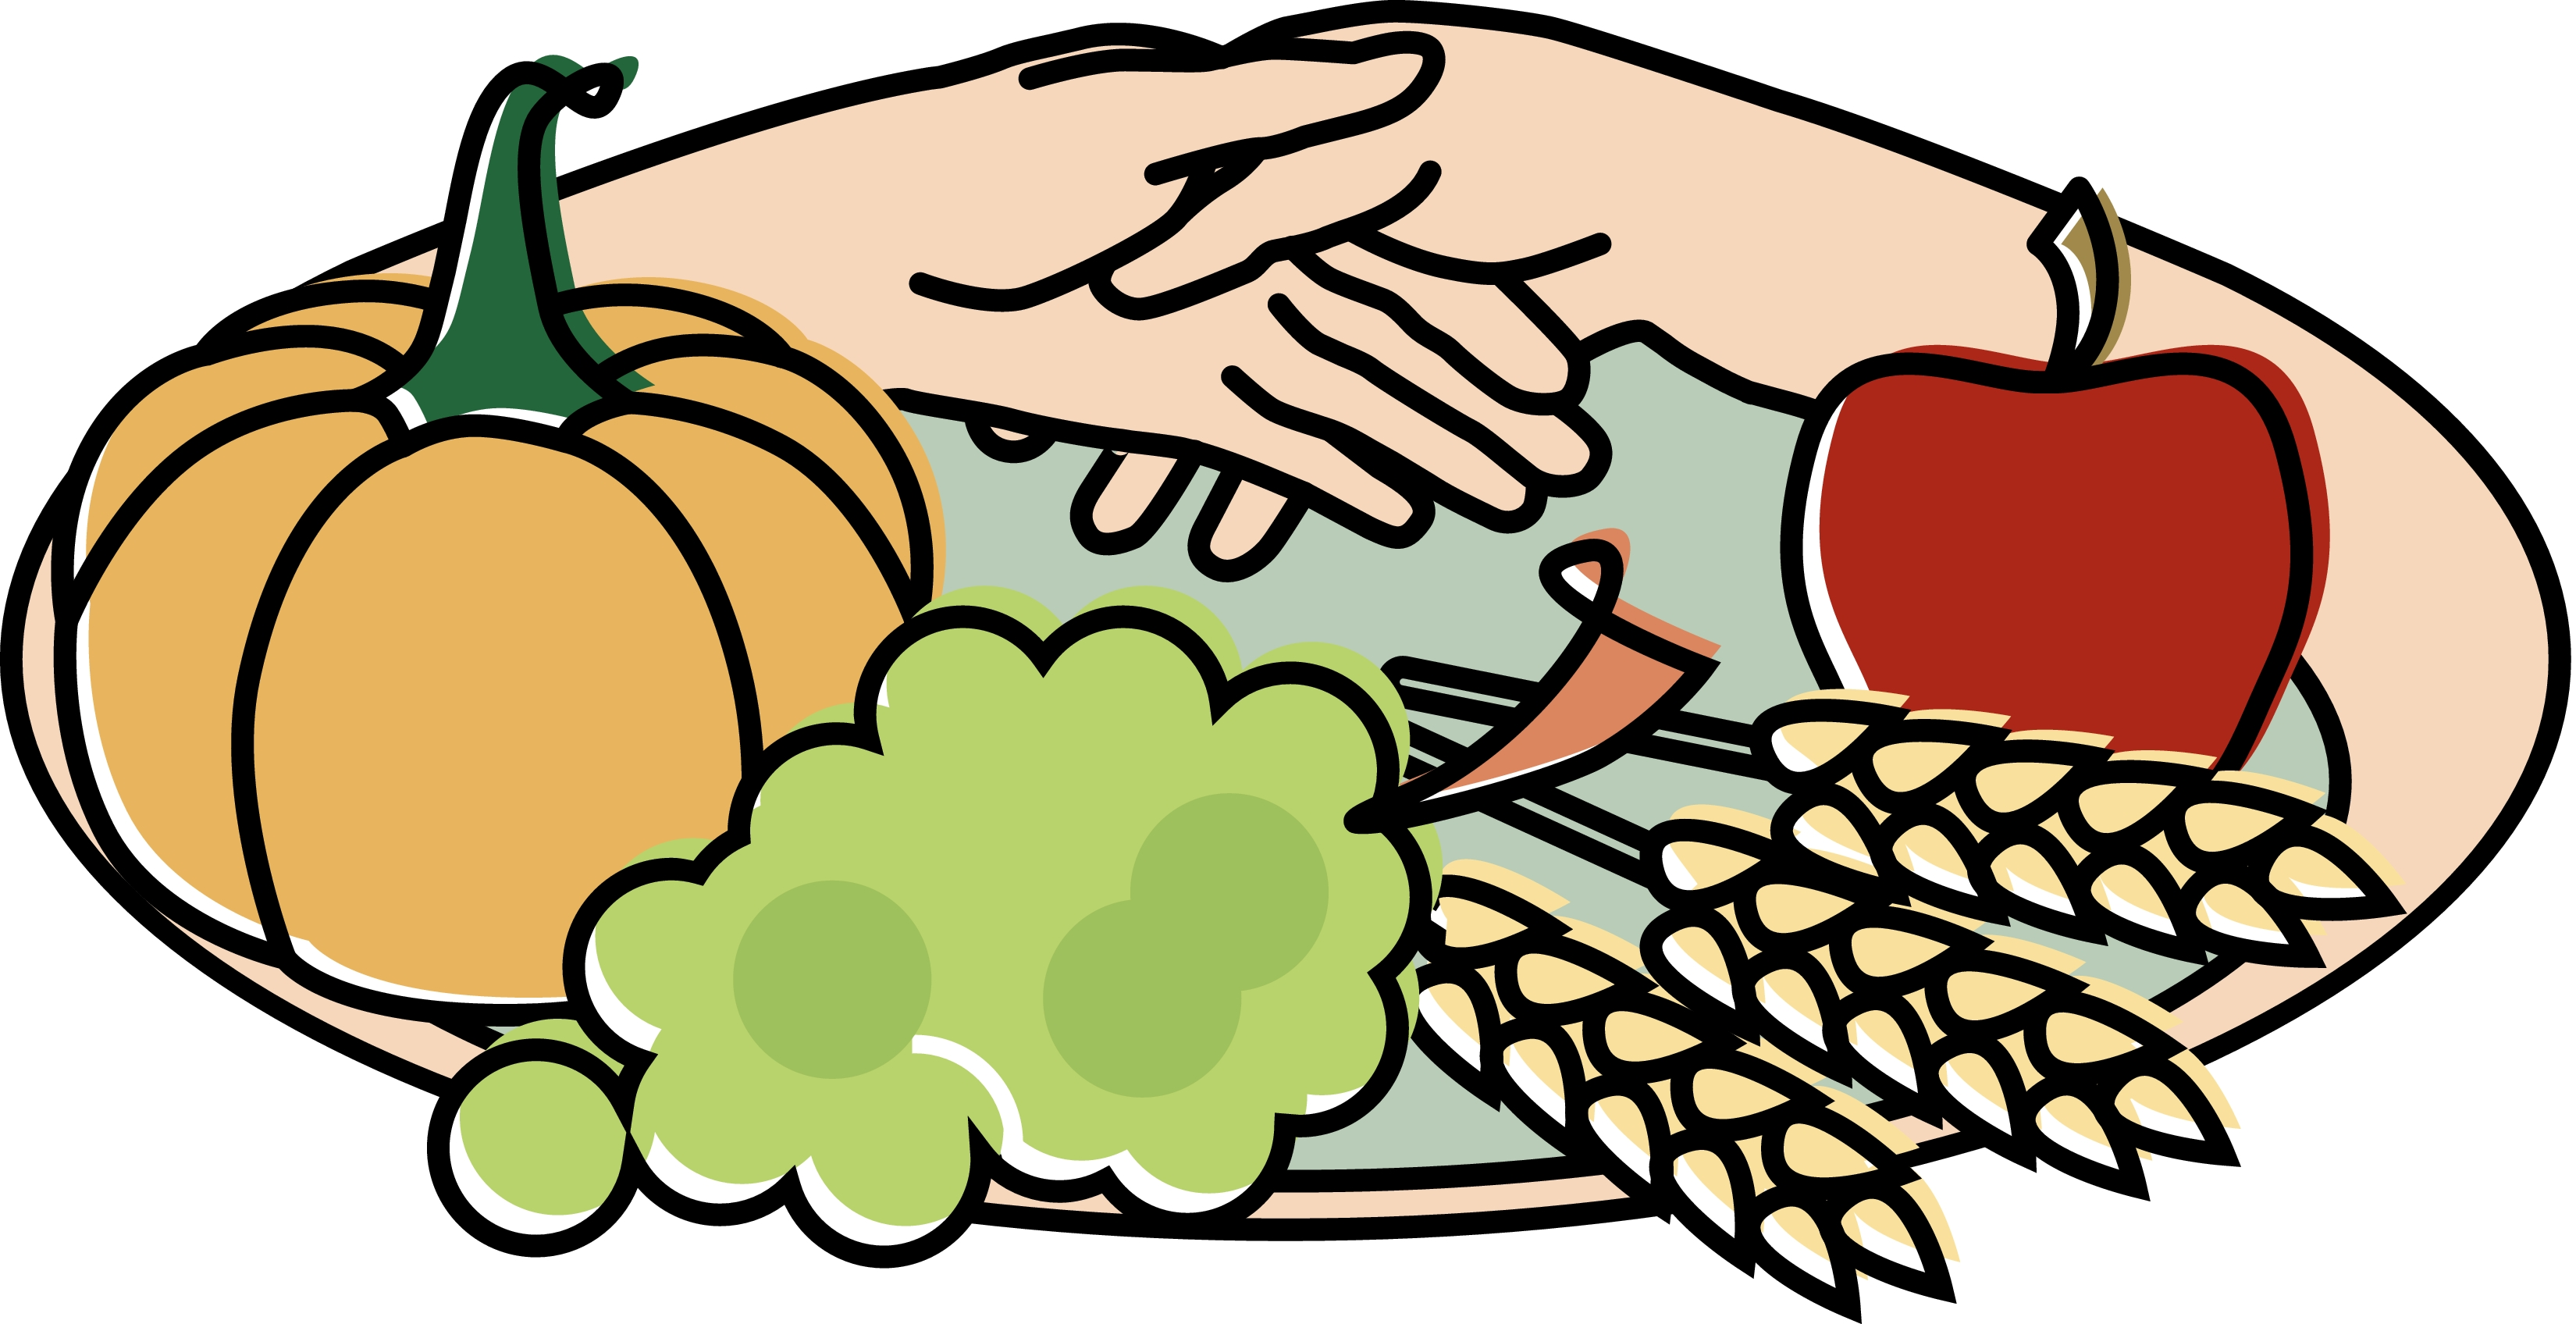 3300x1696 Thanksgiving Food Basket Clipart Black And White Collection